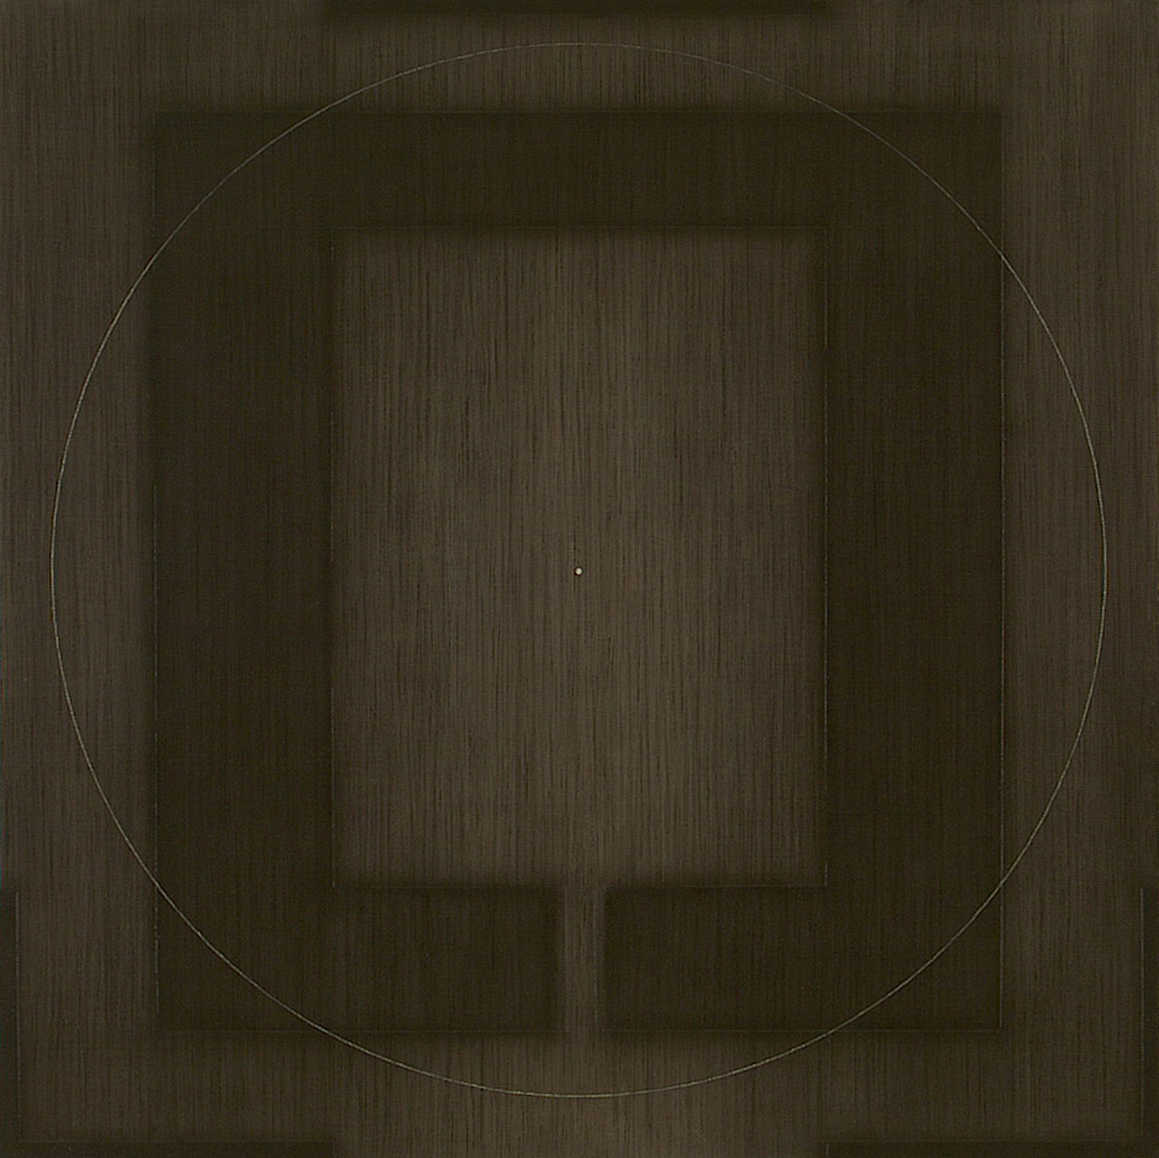 Yantra-ipsum(1) 2001, acrylic, oil on canvas, 31 1/2 x 31 1/2 in. [80x80cm]